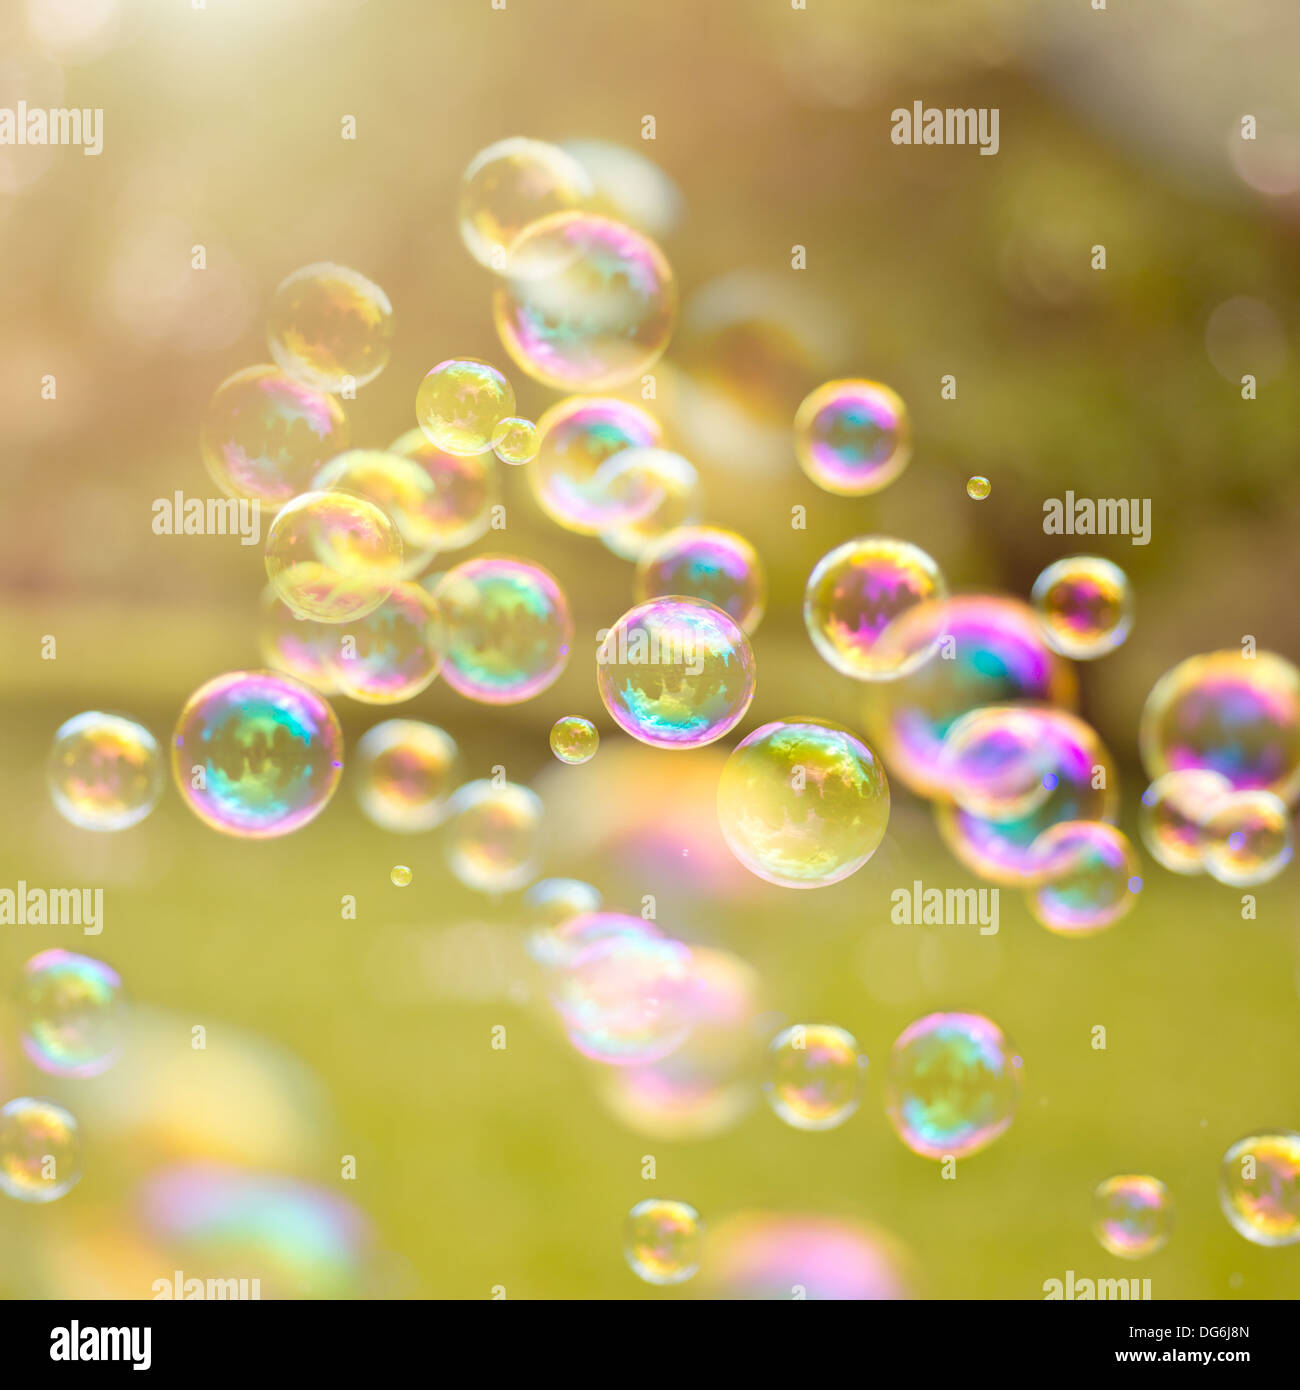 light bubbles drifting in a summer breeze. - Stock Image